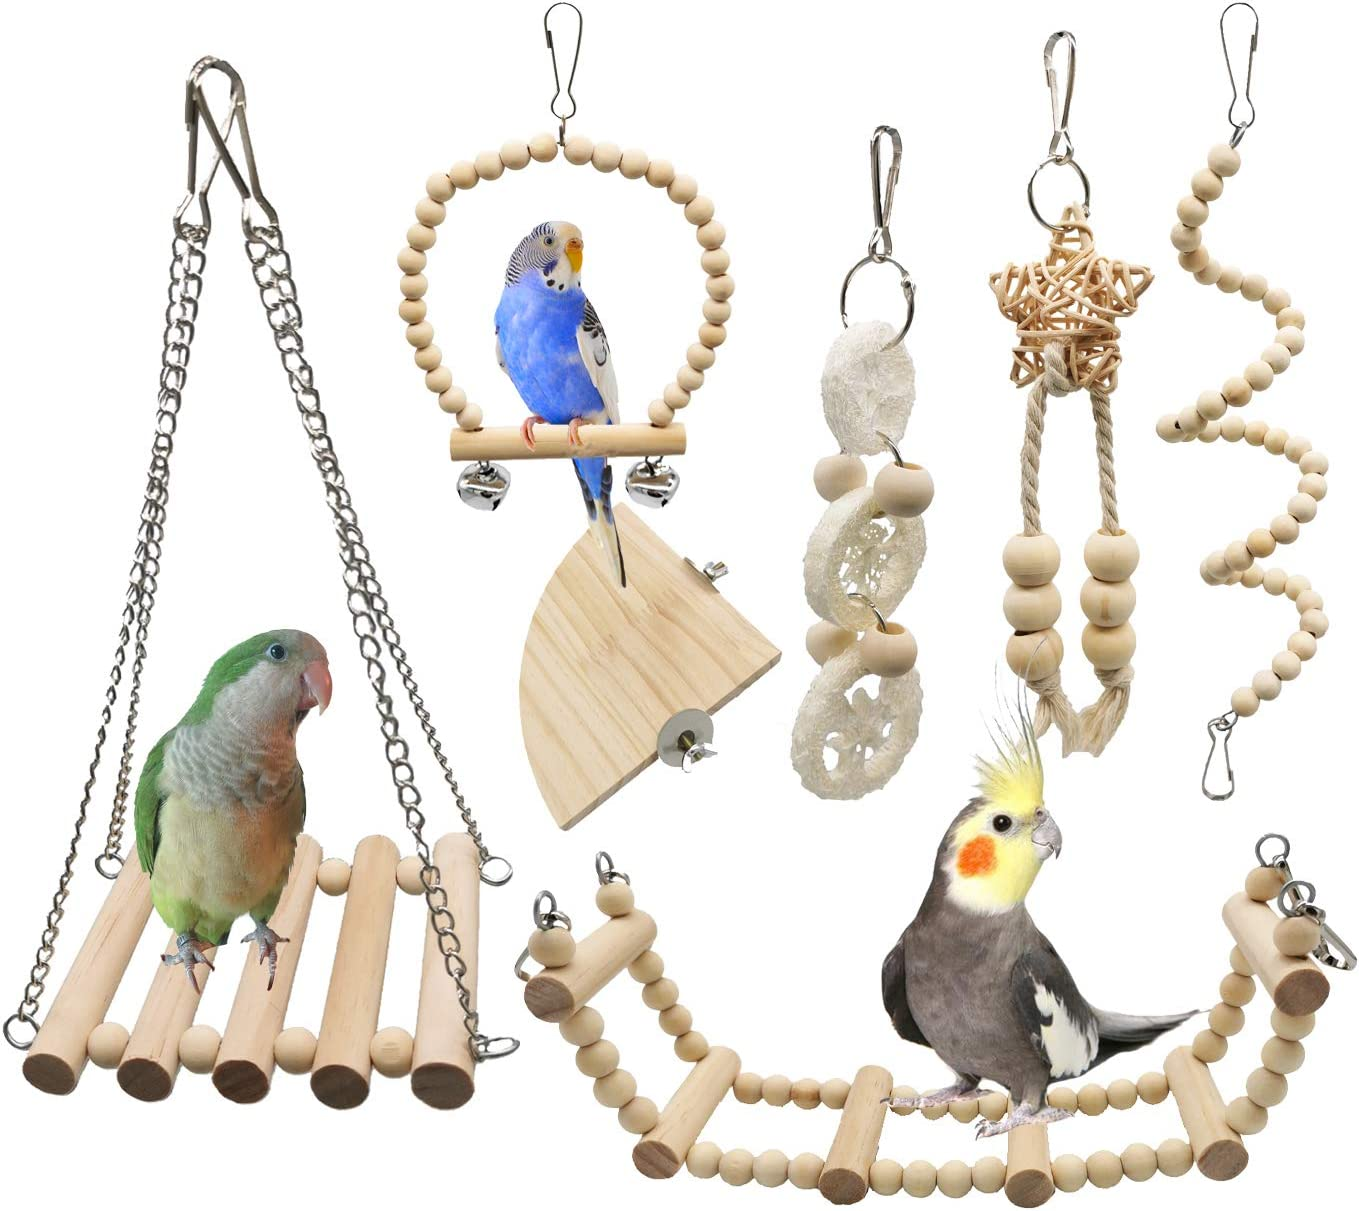 G-HY 7 Pieces of Bird Parrot Play Pure 55% OFF Toys N Chewing Ultra-Cheap Deals Swinging